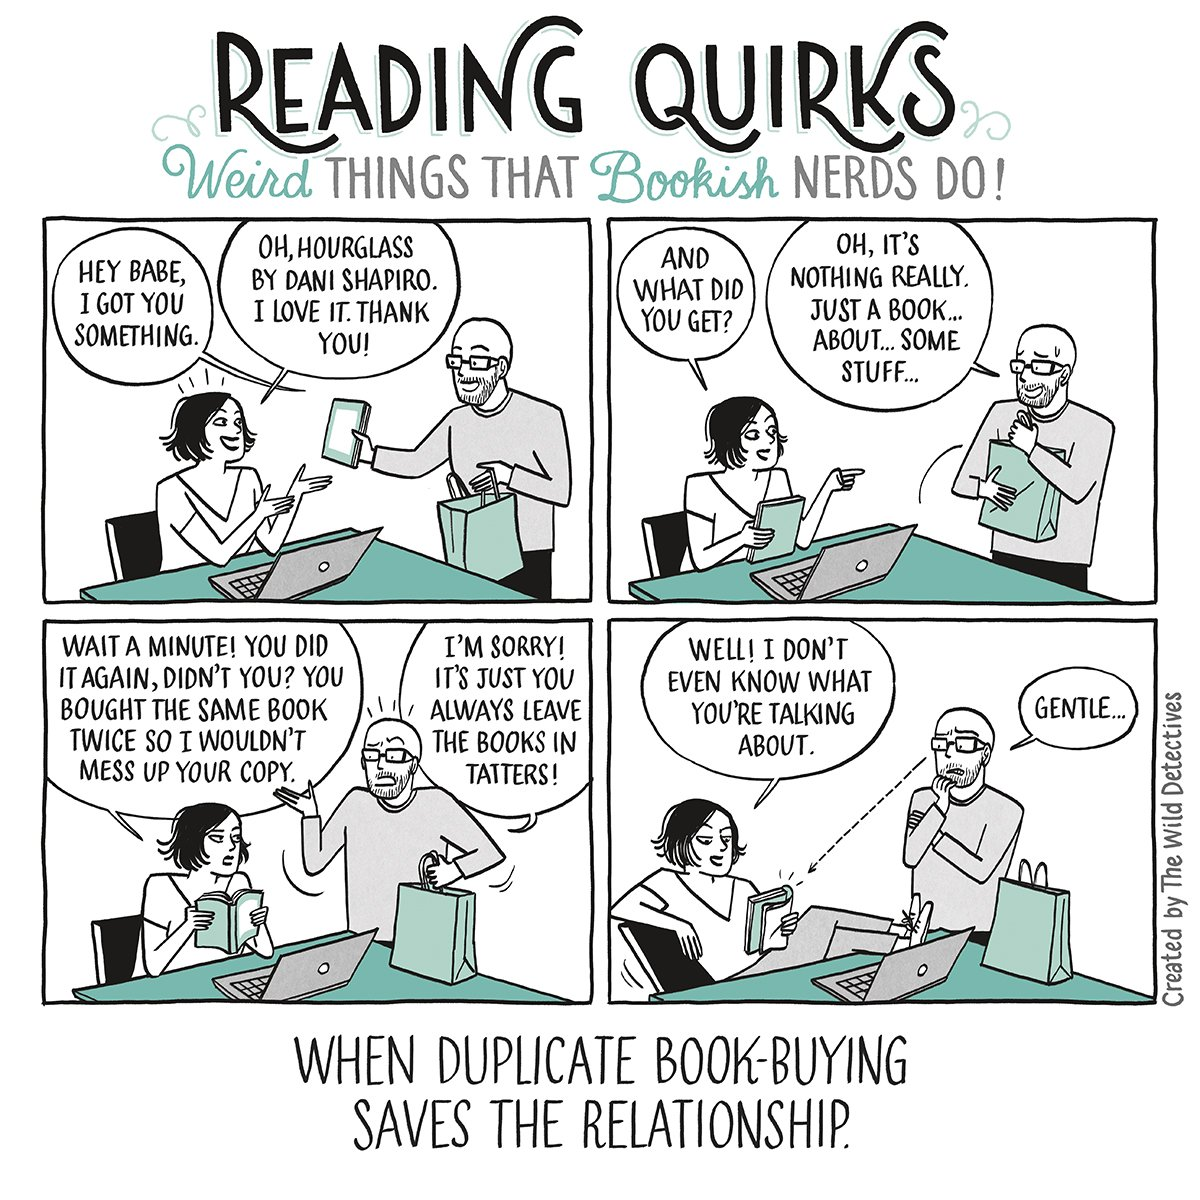 Reading Quirks #53